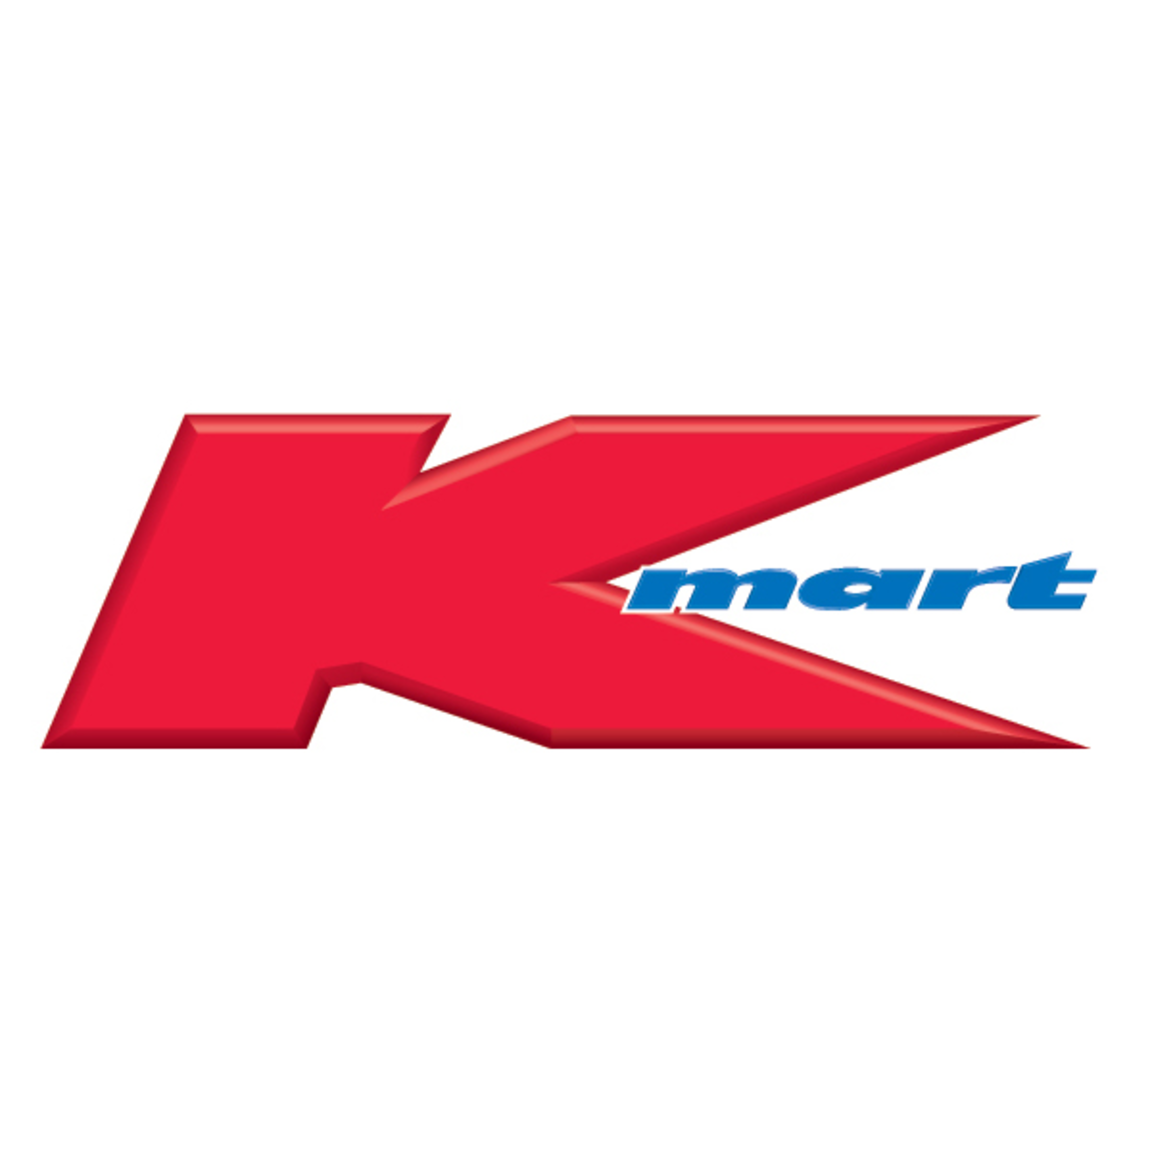 Kmart at westfield parramatta kmart gumiabroncs Image collections